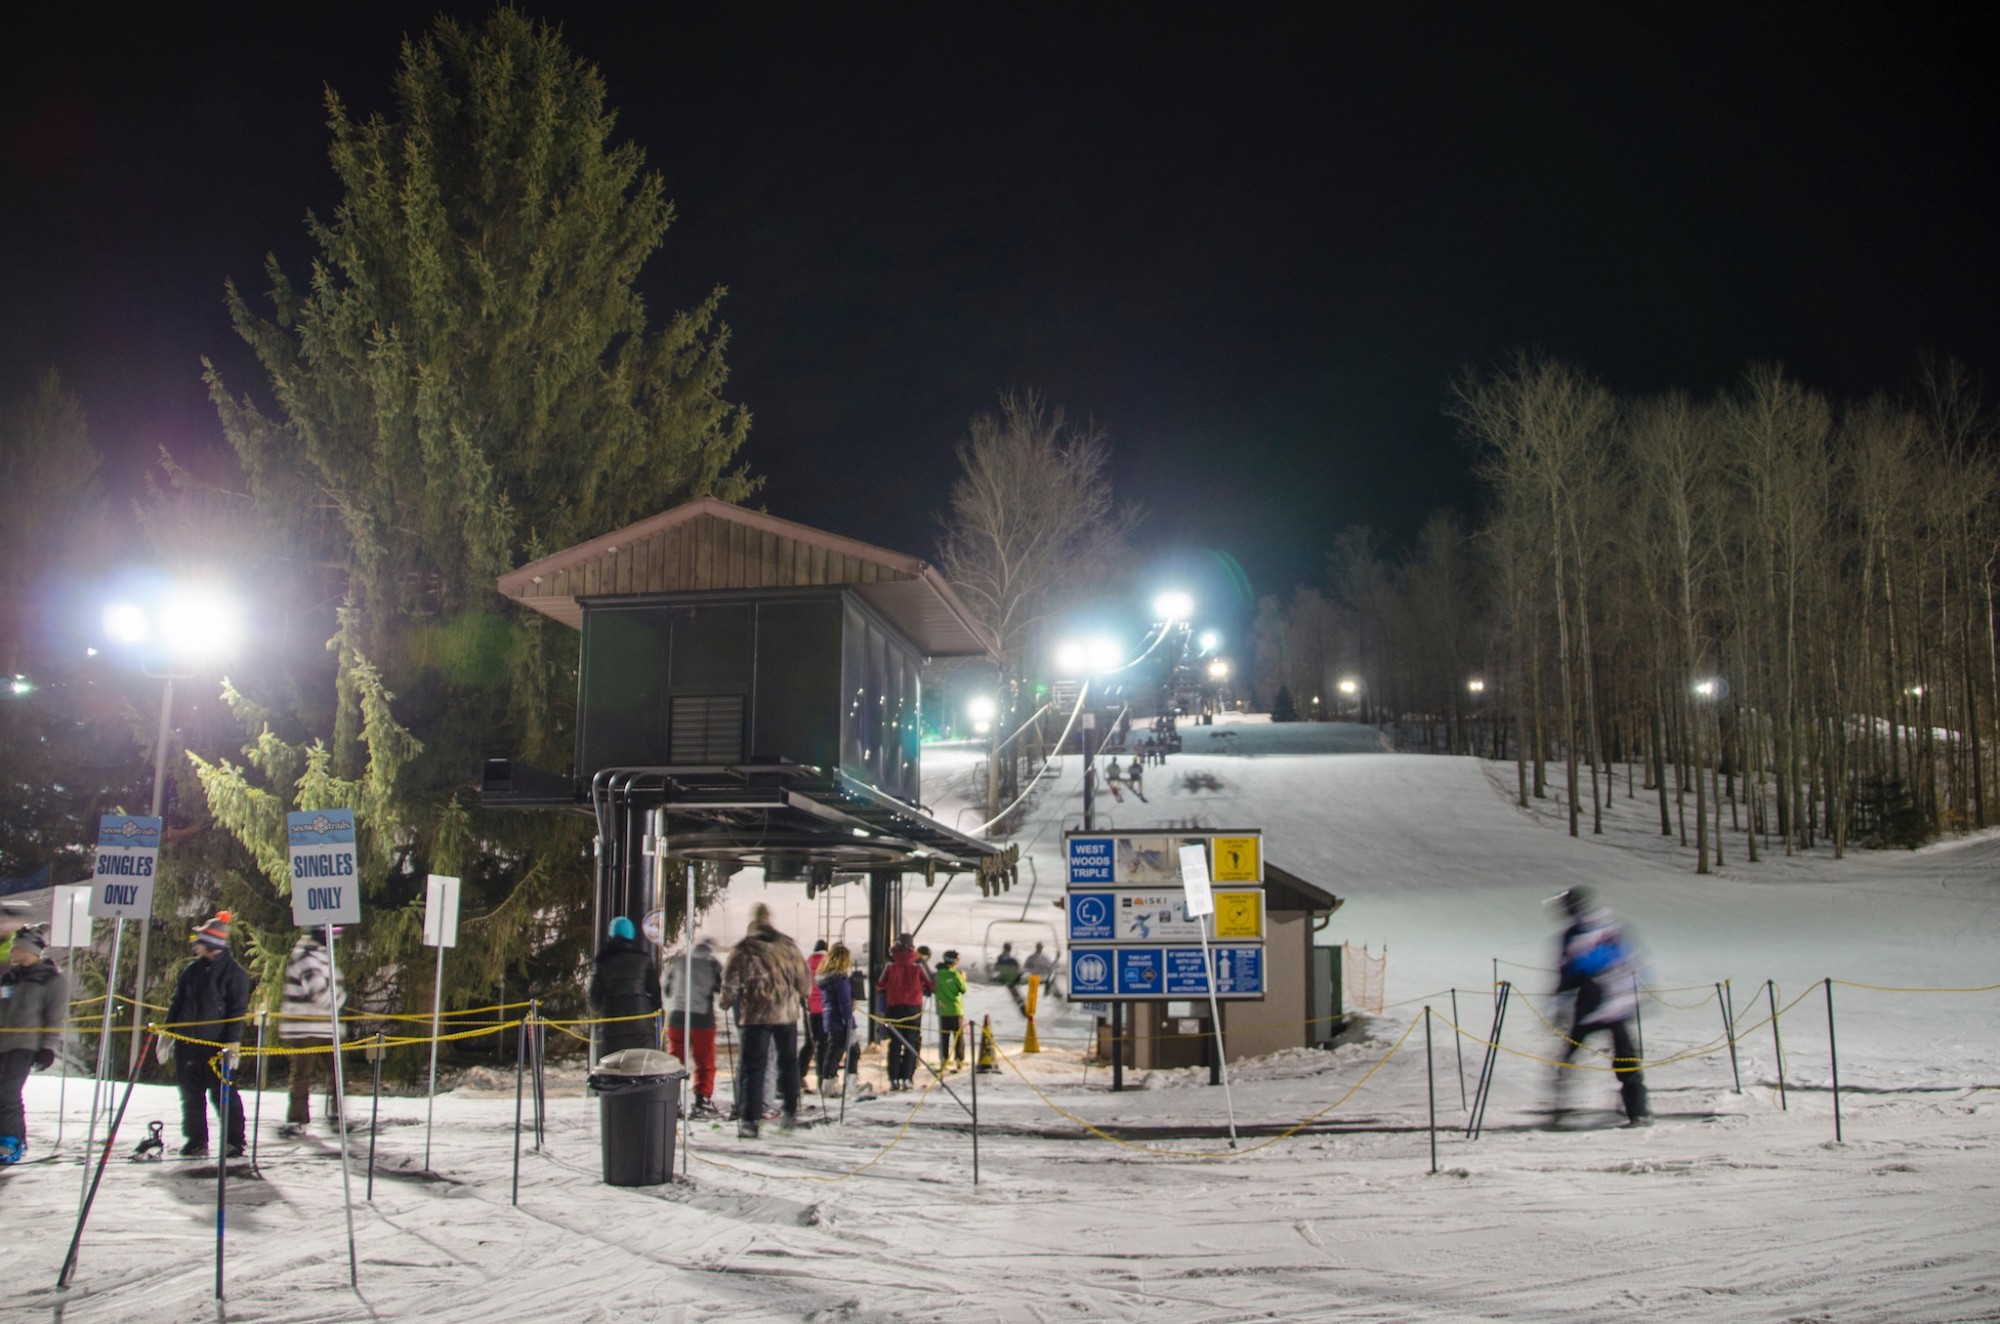 Late Night skiing at Snow Trails